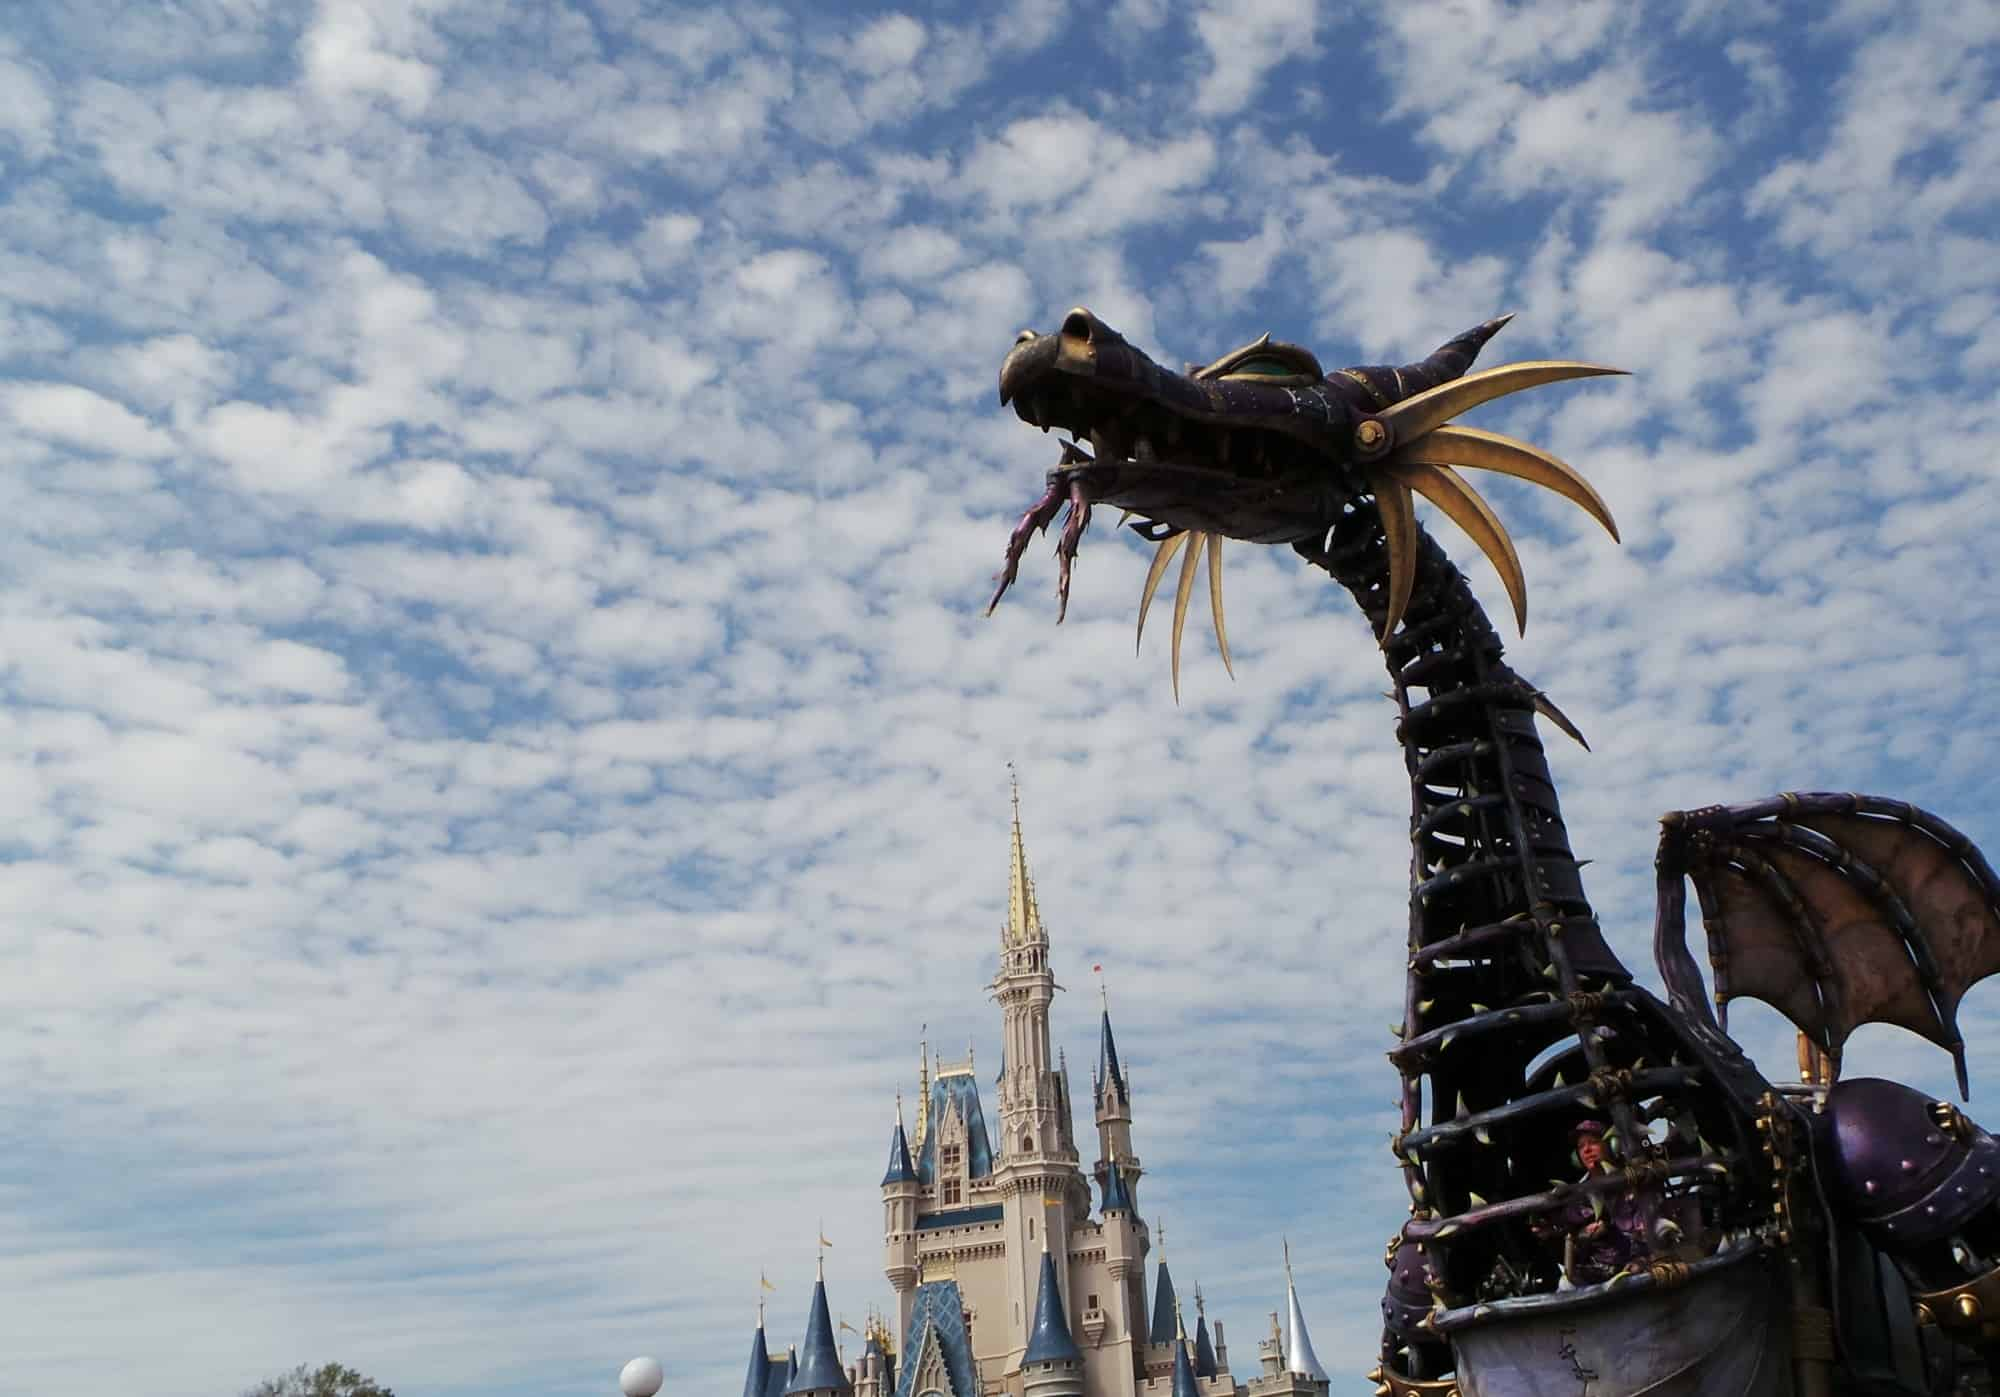 Festival of Fantasy Maleficent